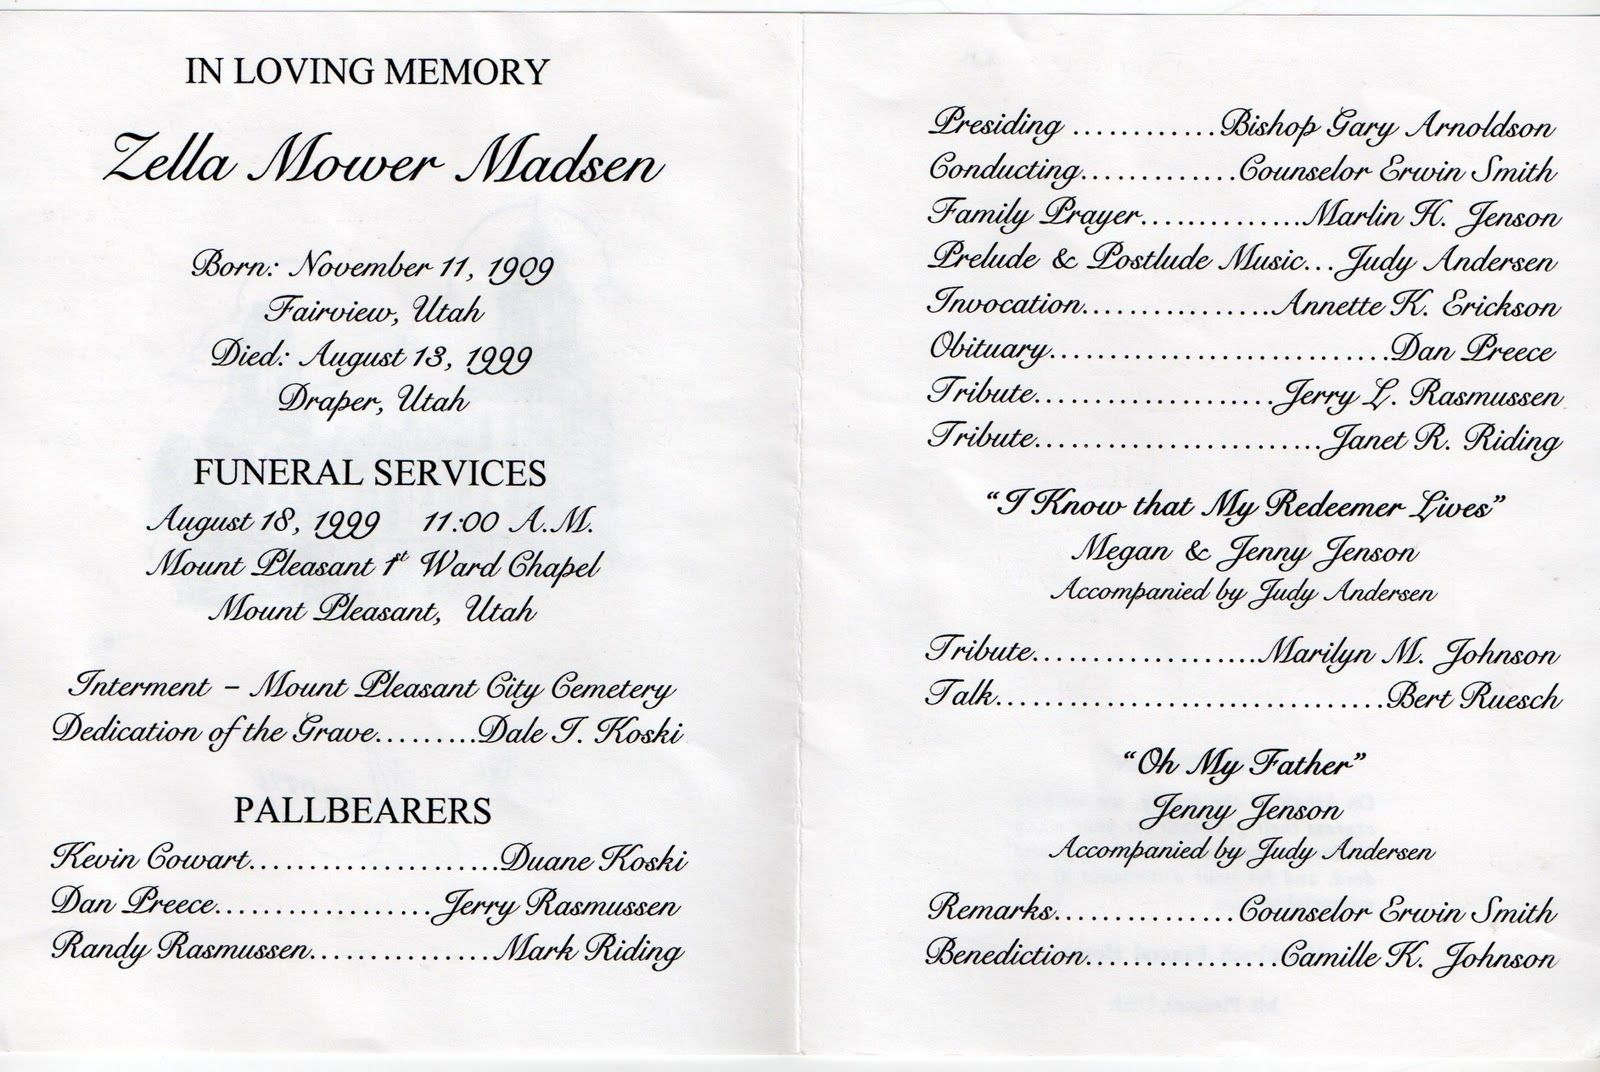 Memorial Service Programs Sample  Mt Pleasant Obituary Page Zella